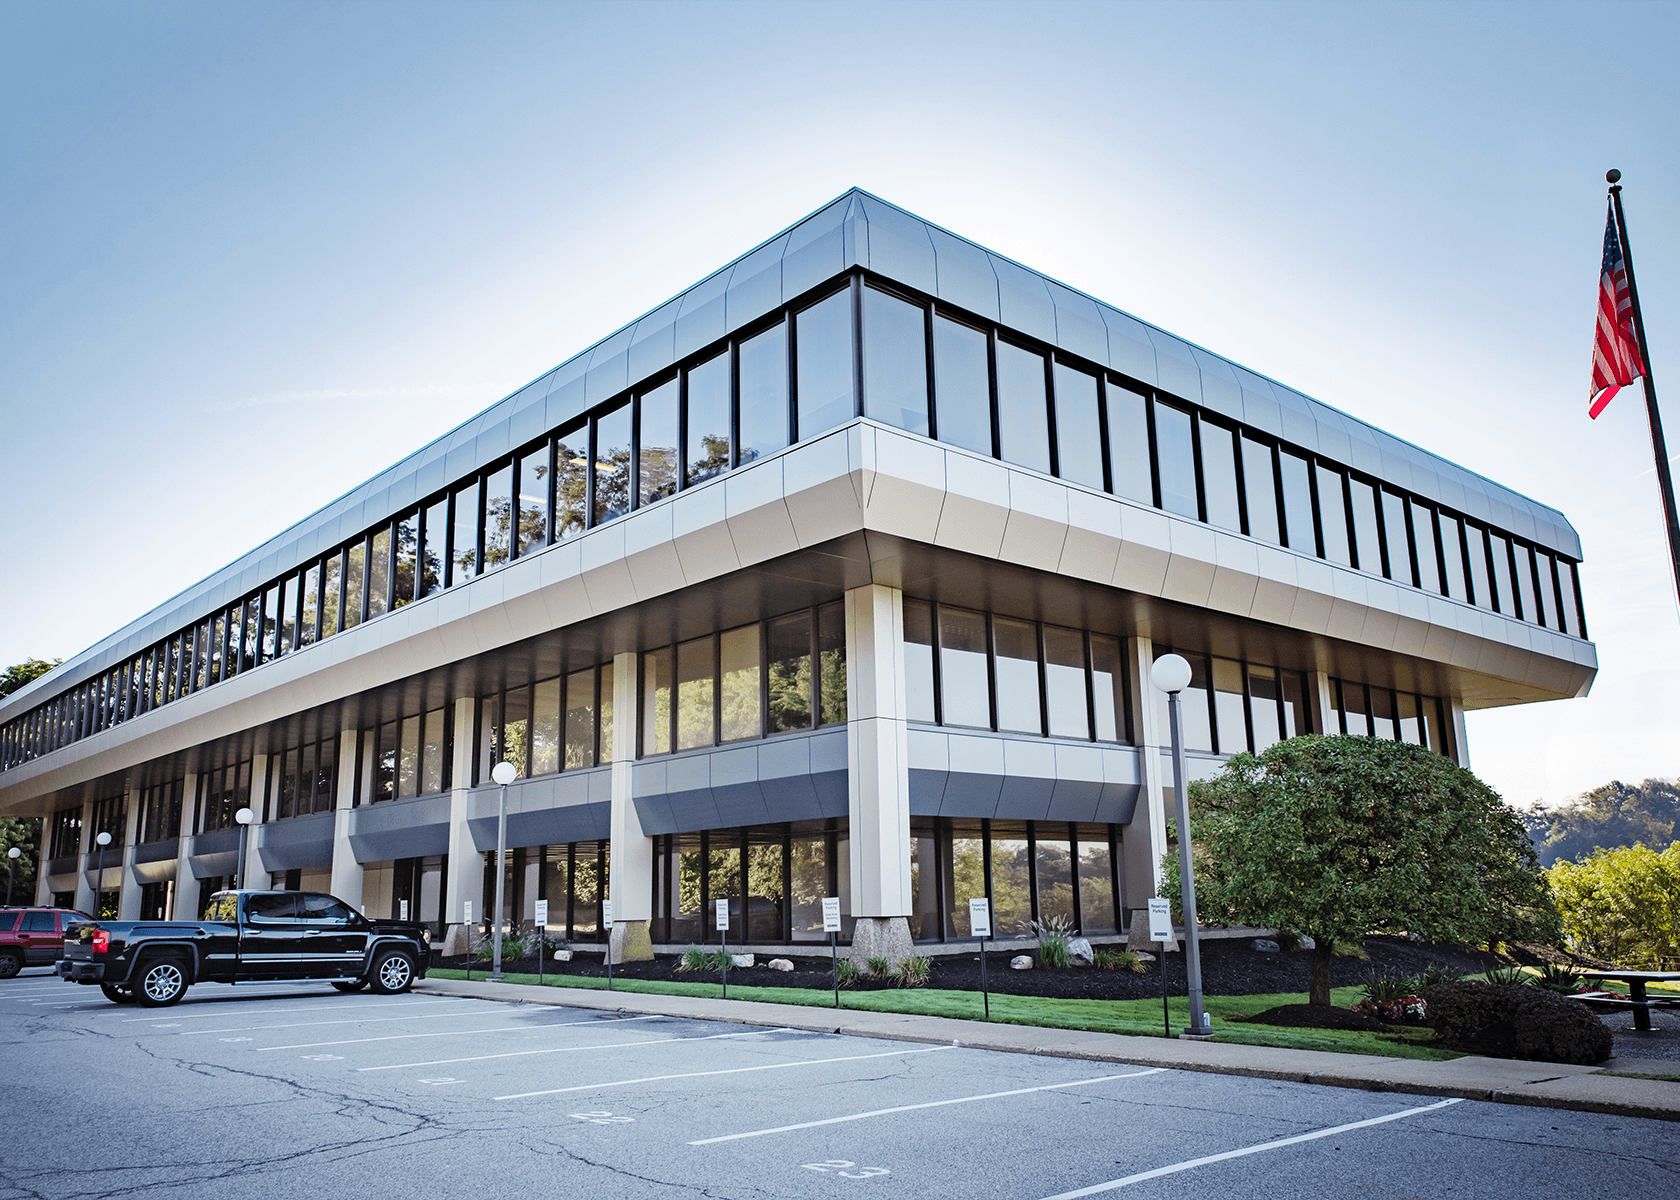 Exterior of Foster 0 office building-three story tan building with large windows